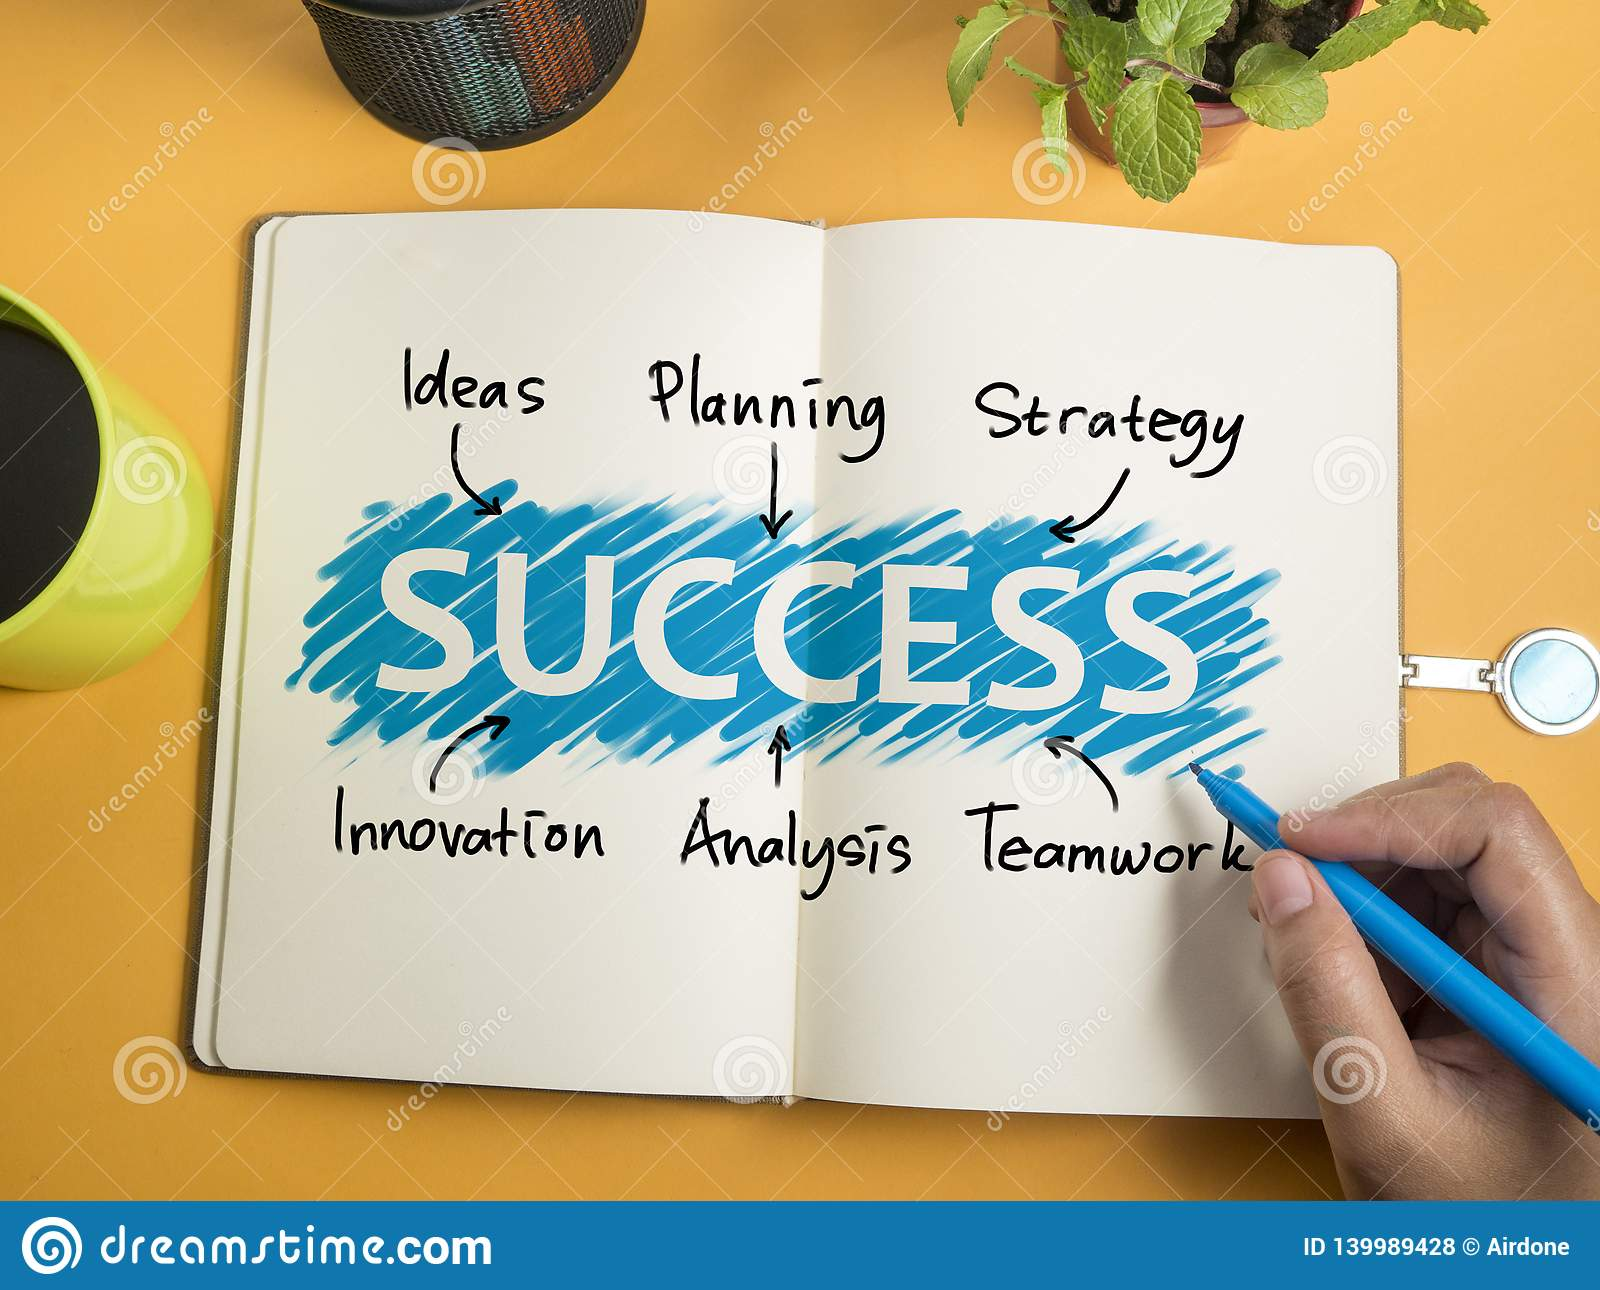 Success Motivational Words Quotes Concept Stock Photo Image Of